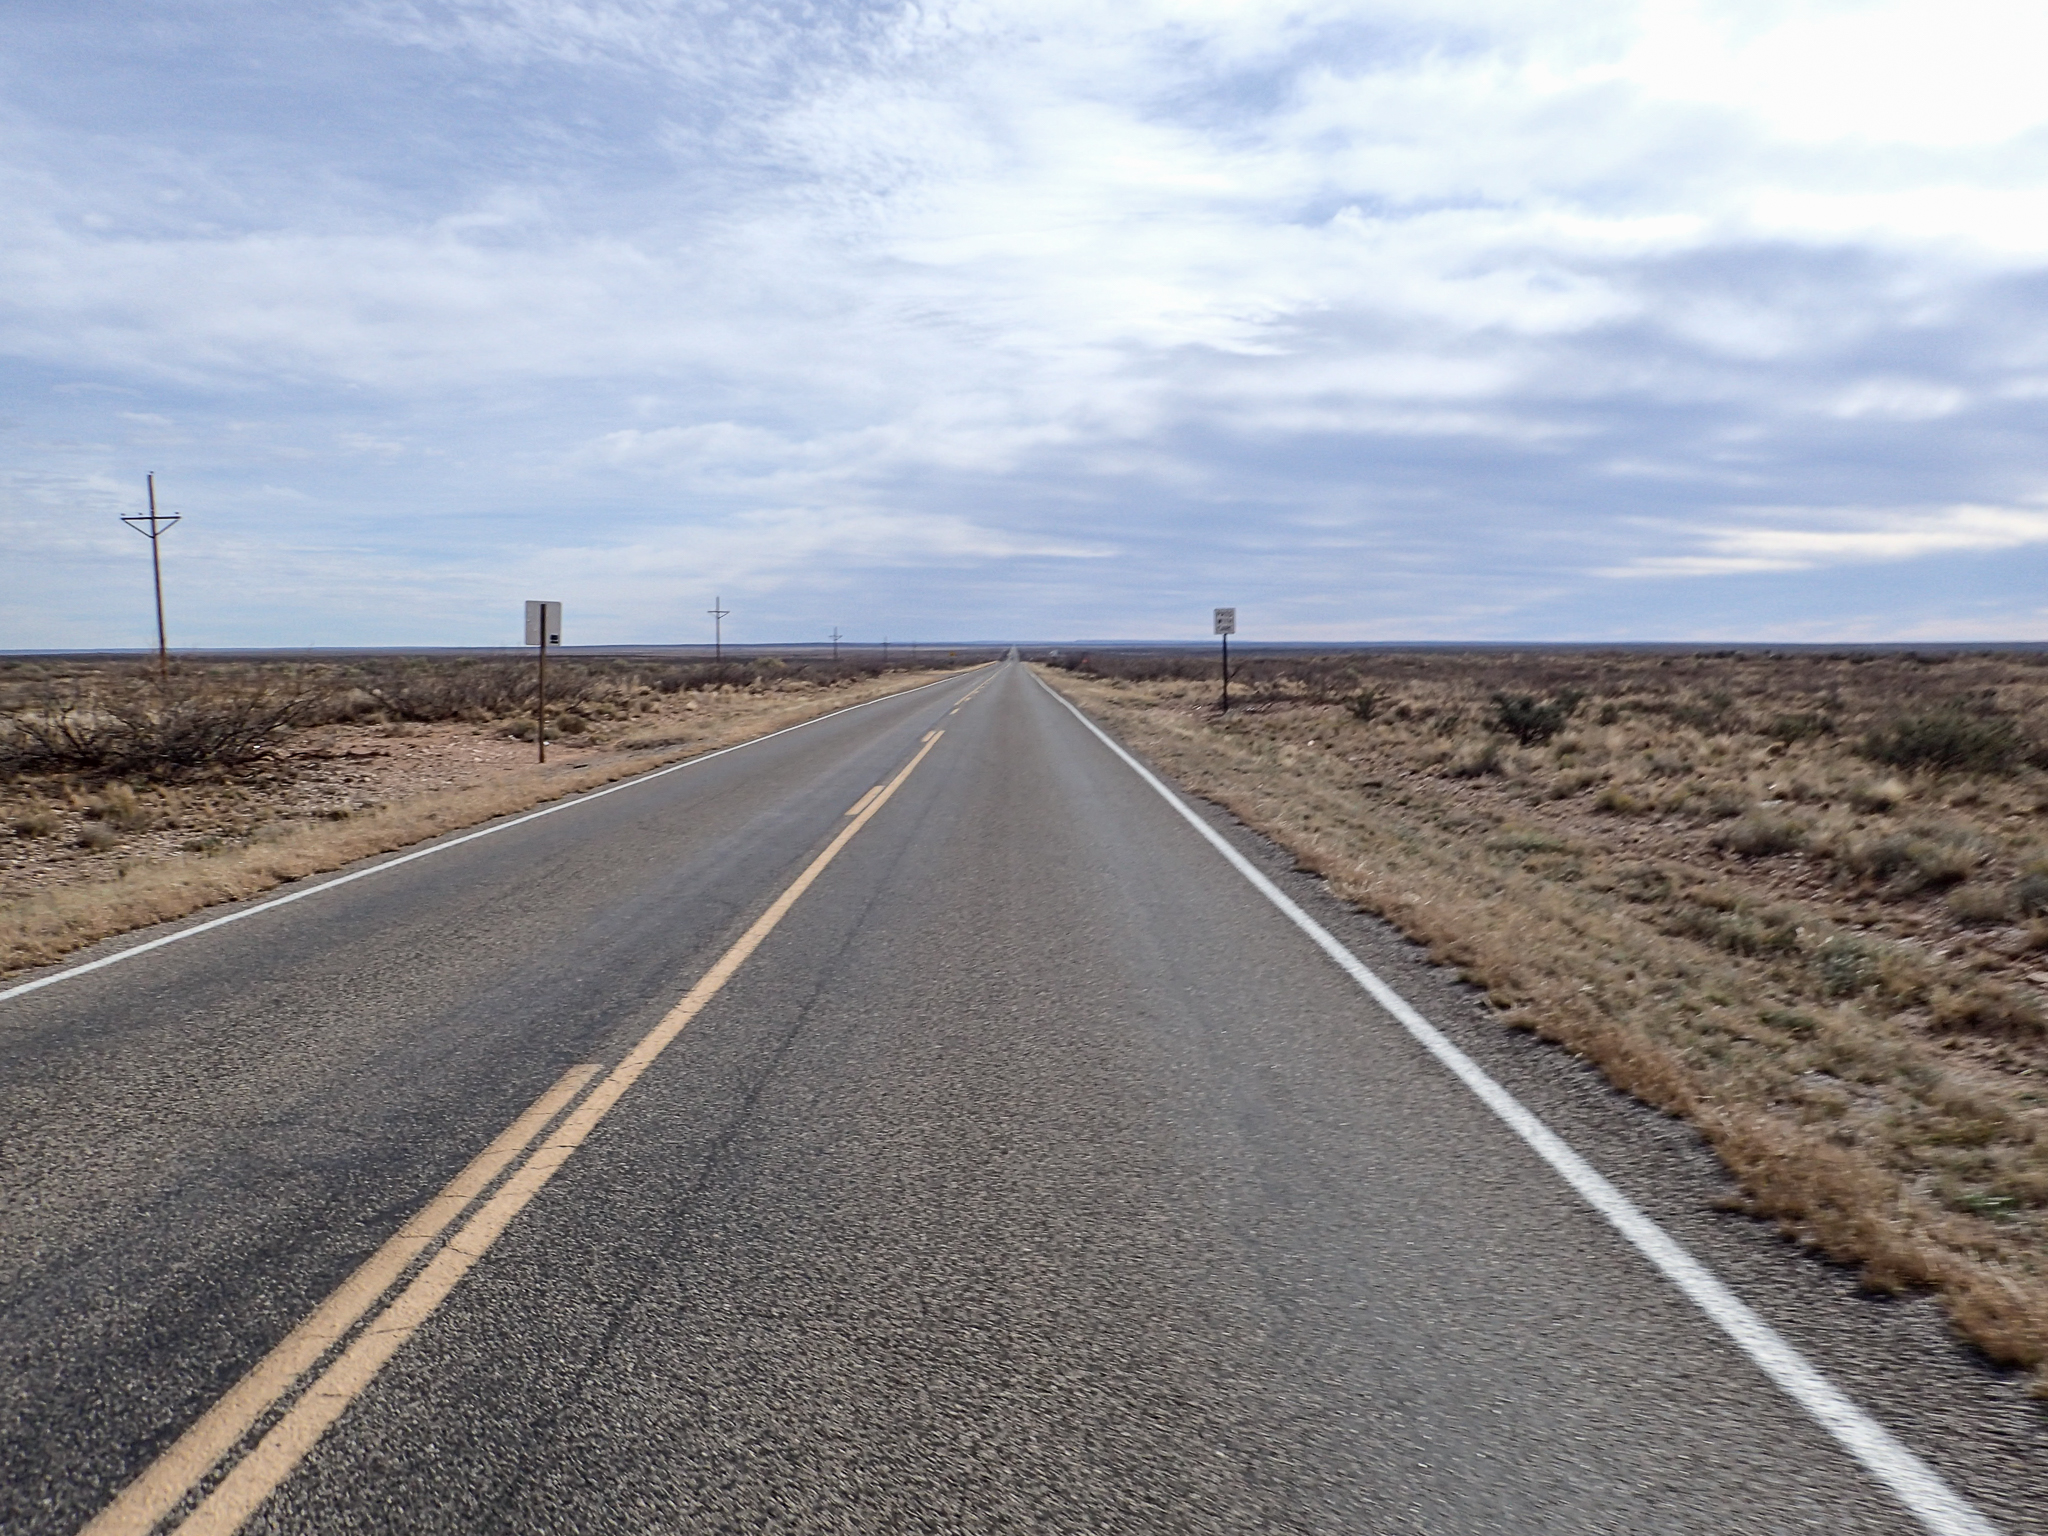 West Texas - long straight roads